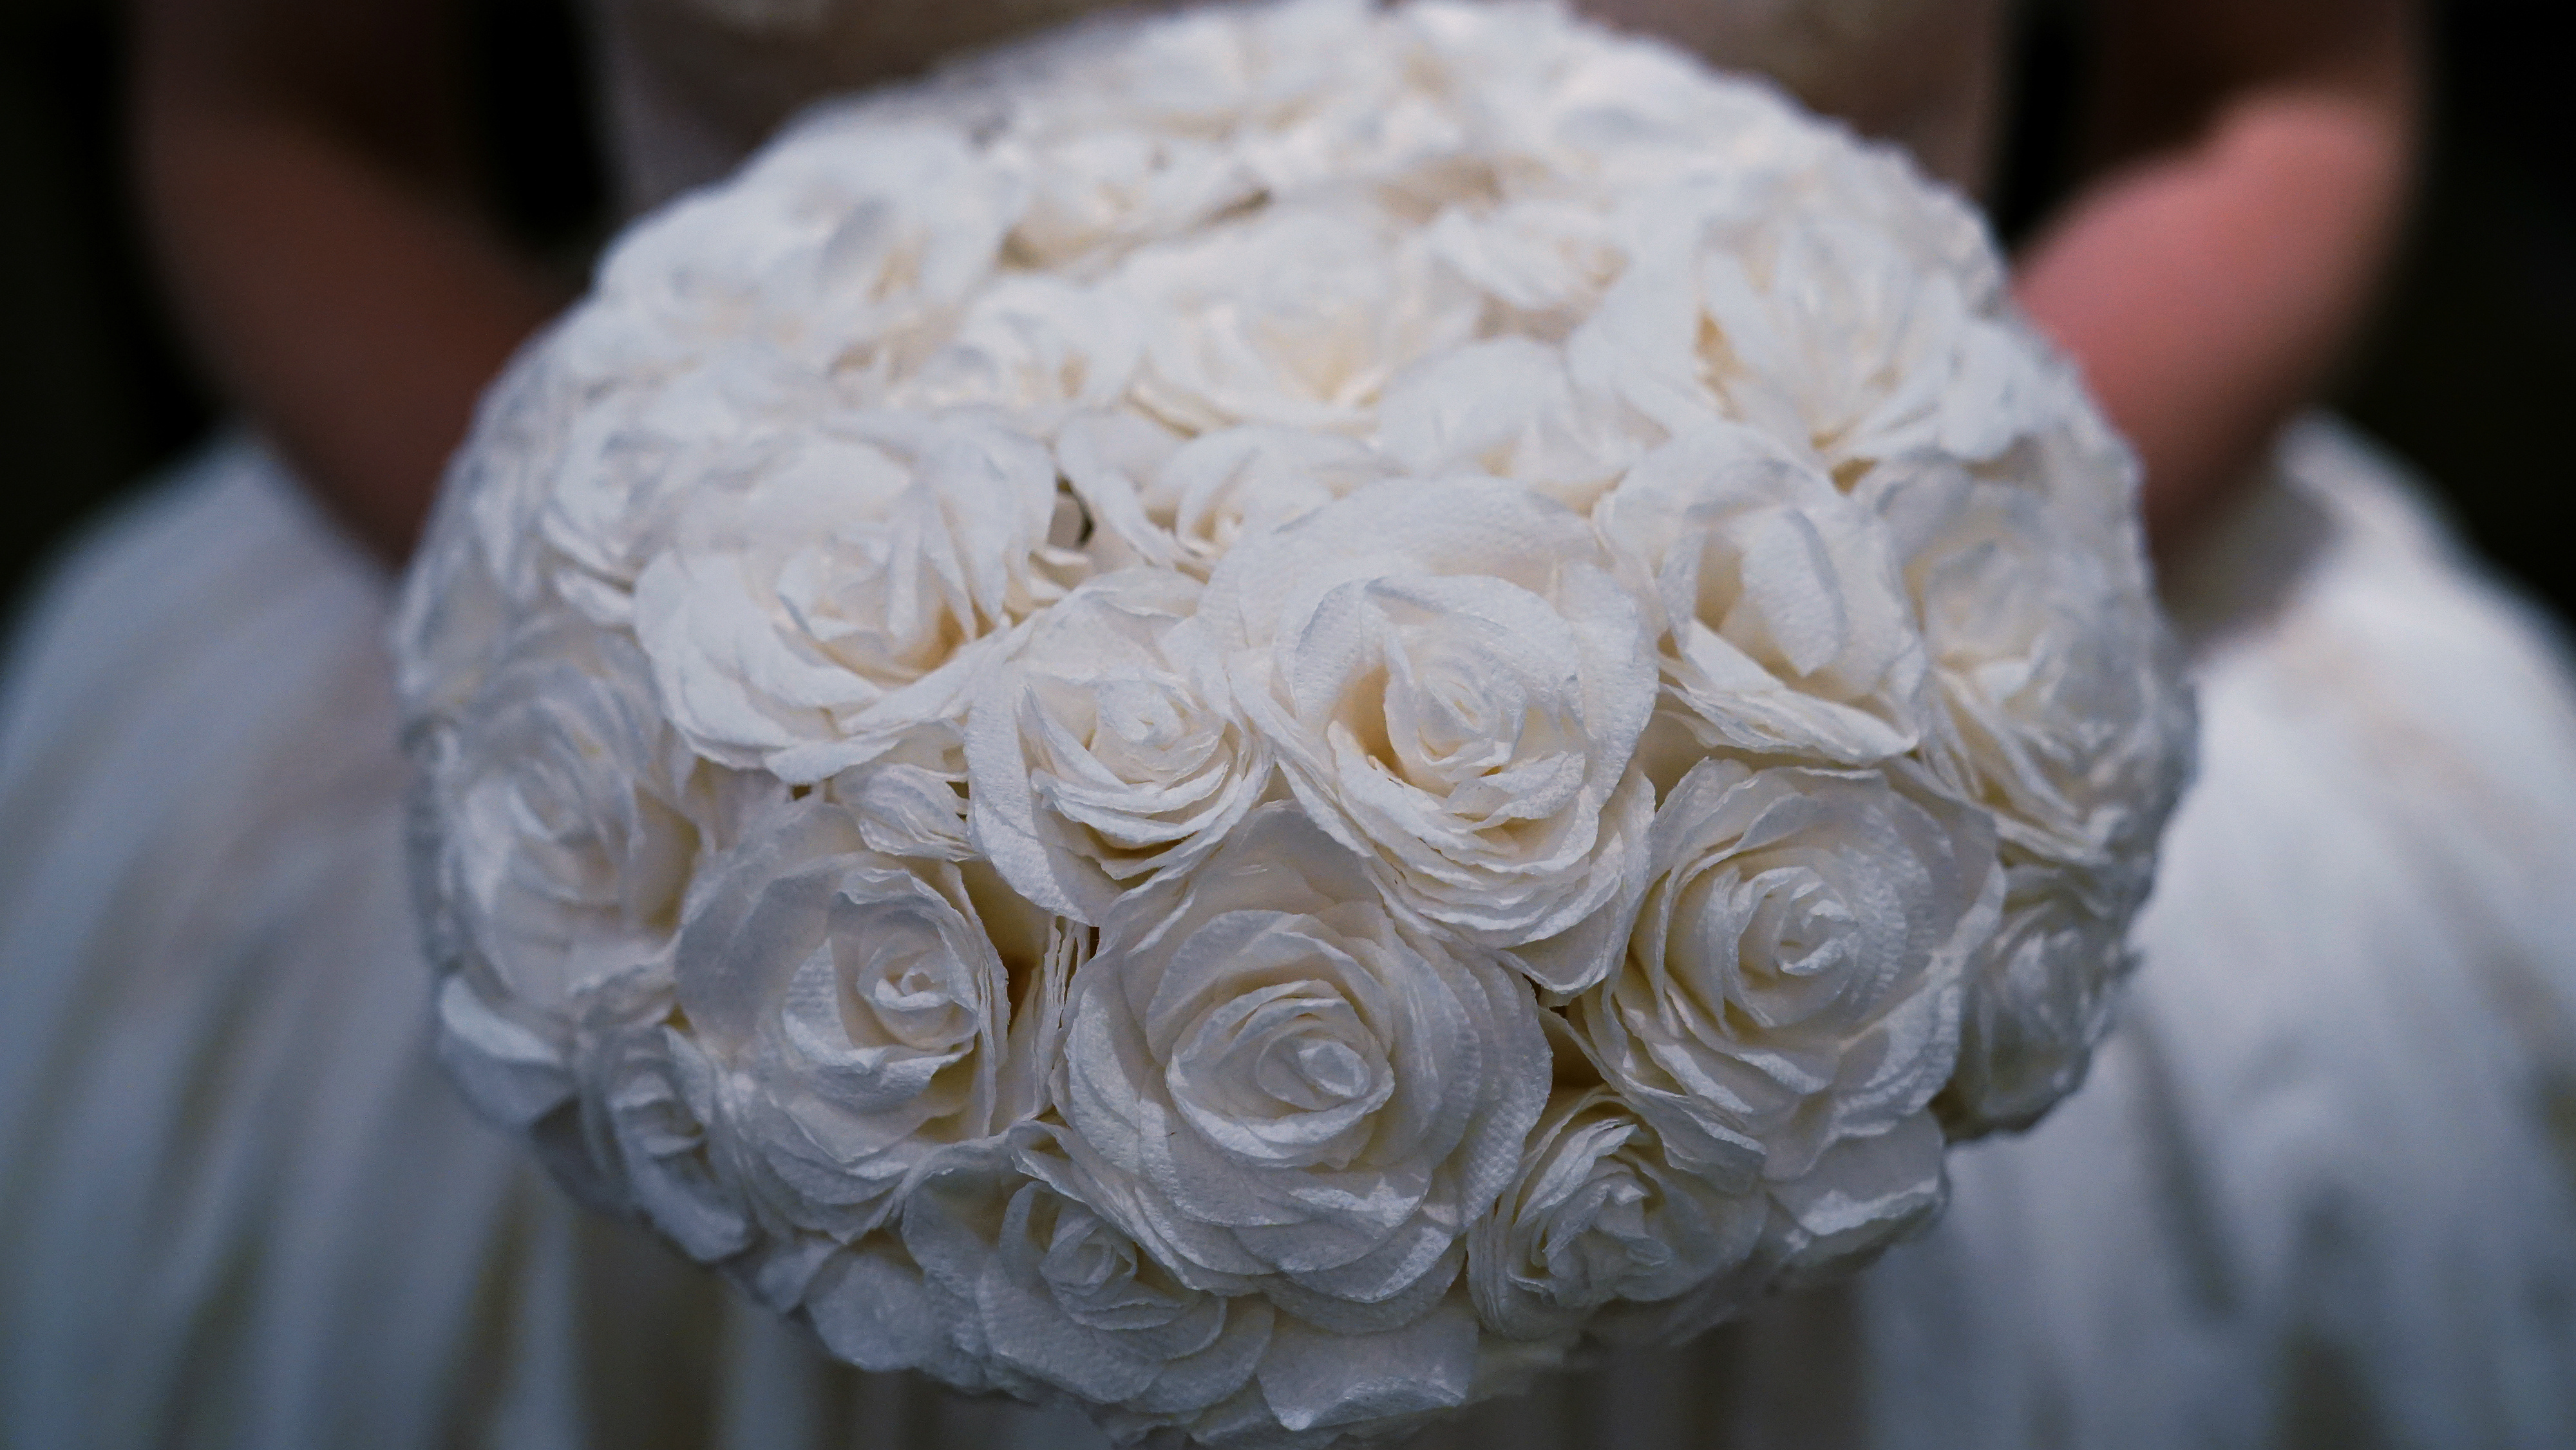 A wedding bouquet.